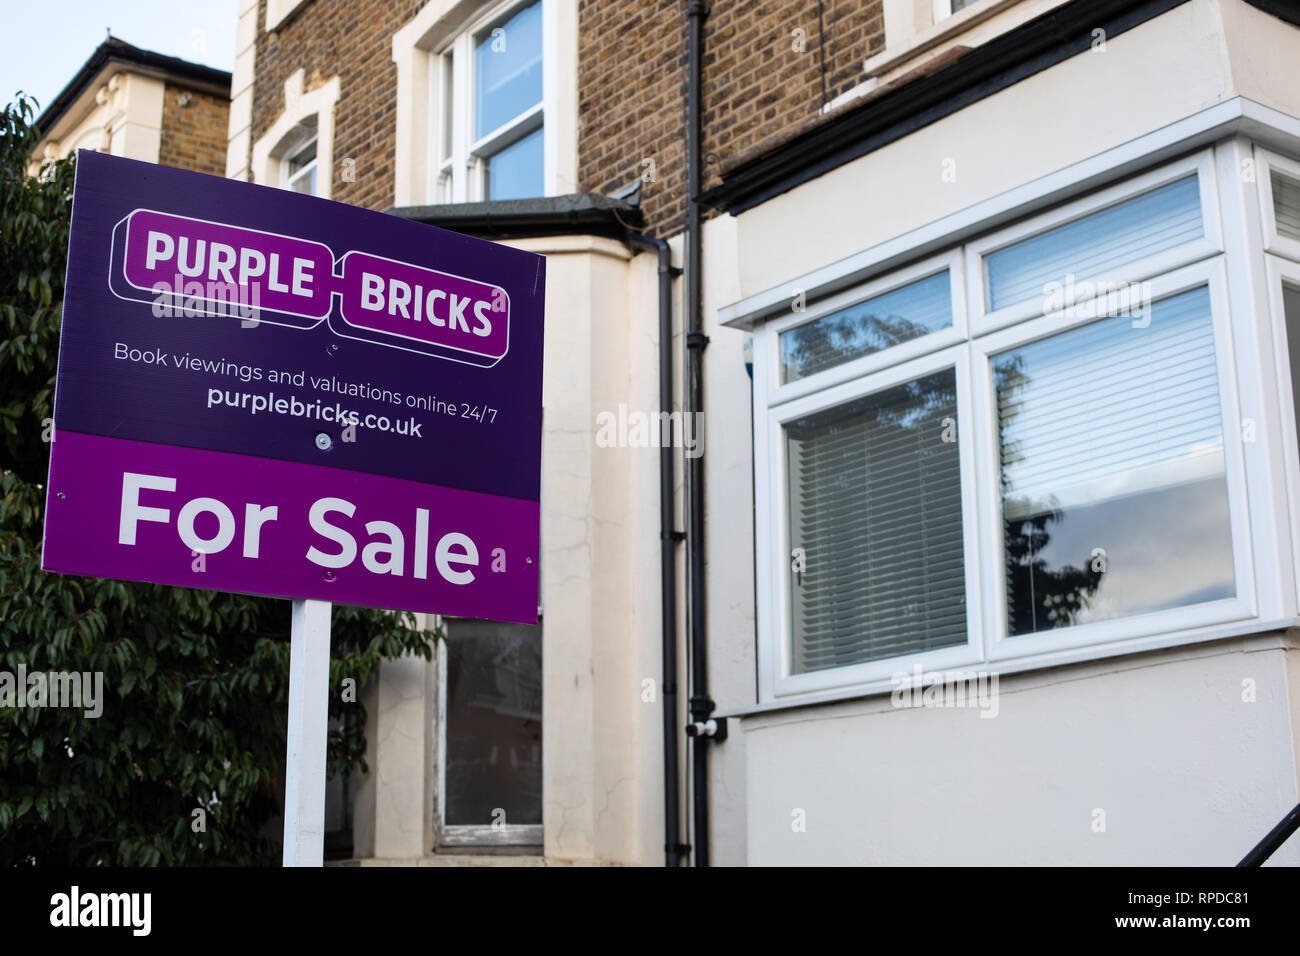 A Purple Bricks 'For Sale' sign outside a property in London - Stock Image